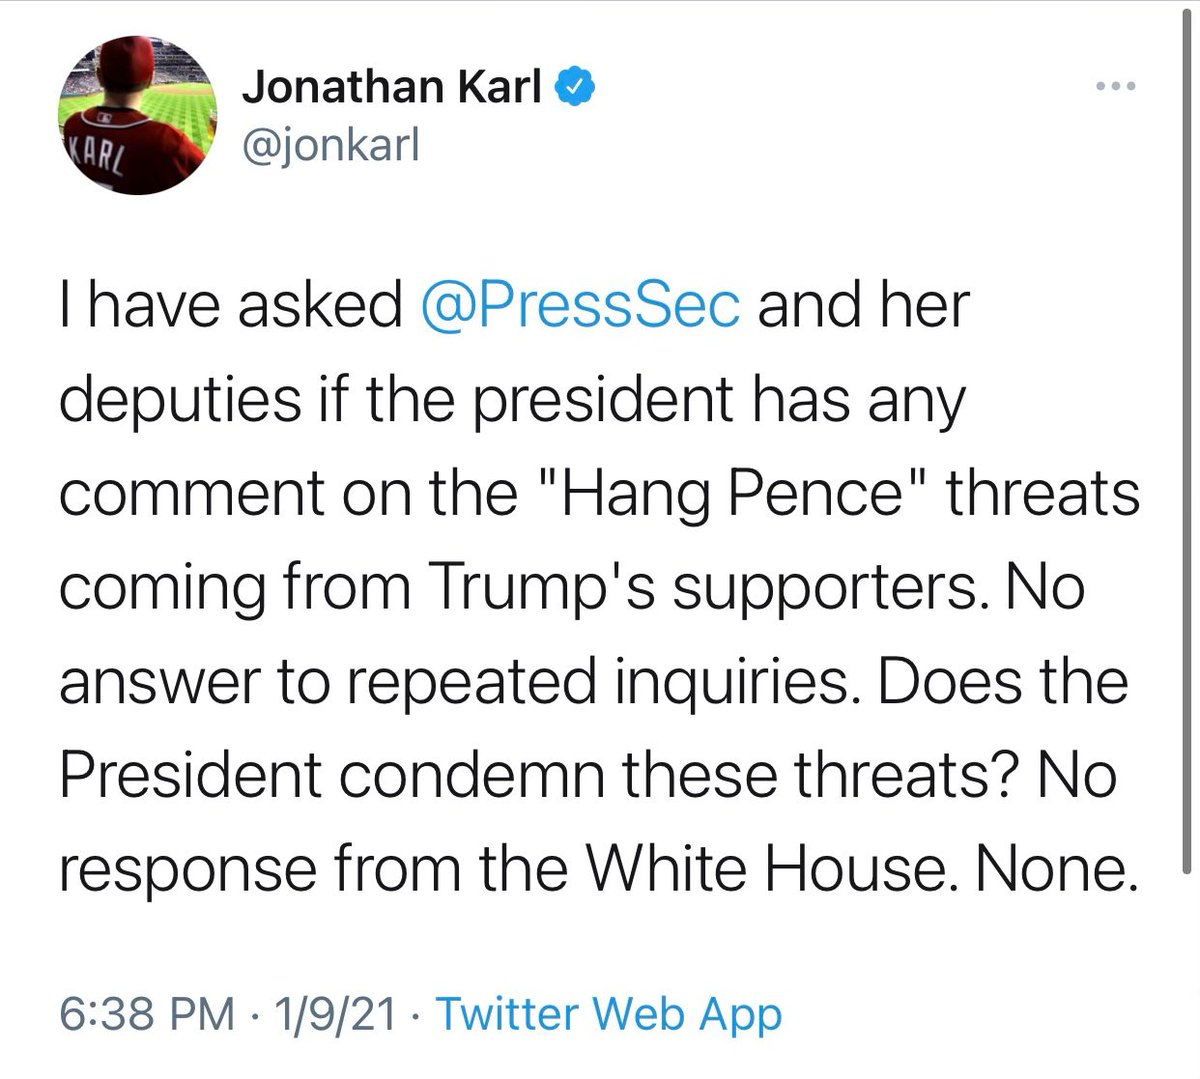 The White House sent @jonkarl a response condemning all violence at 5:55pm, yet he irresponsibly tweeted at 6:38pm that we did not respond.  Jon, check your inbox before you tweet. ⬇️